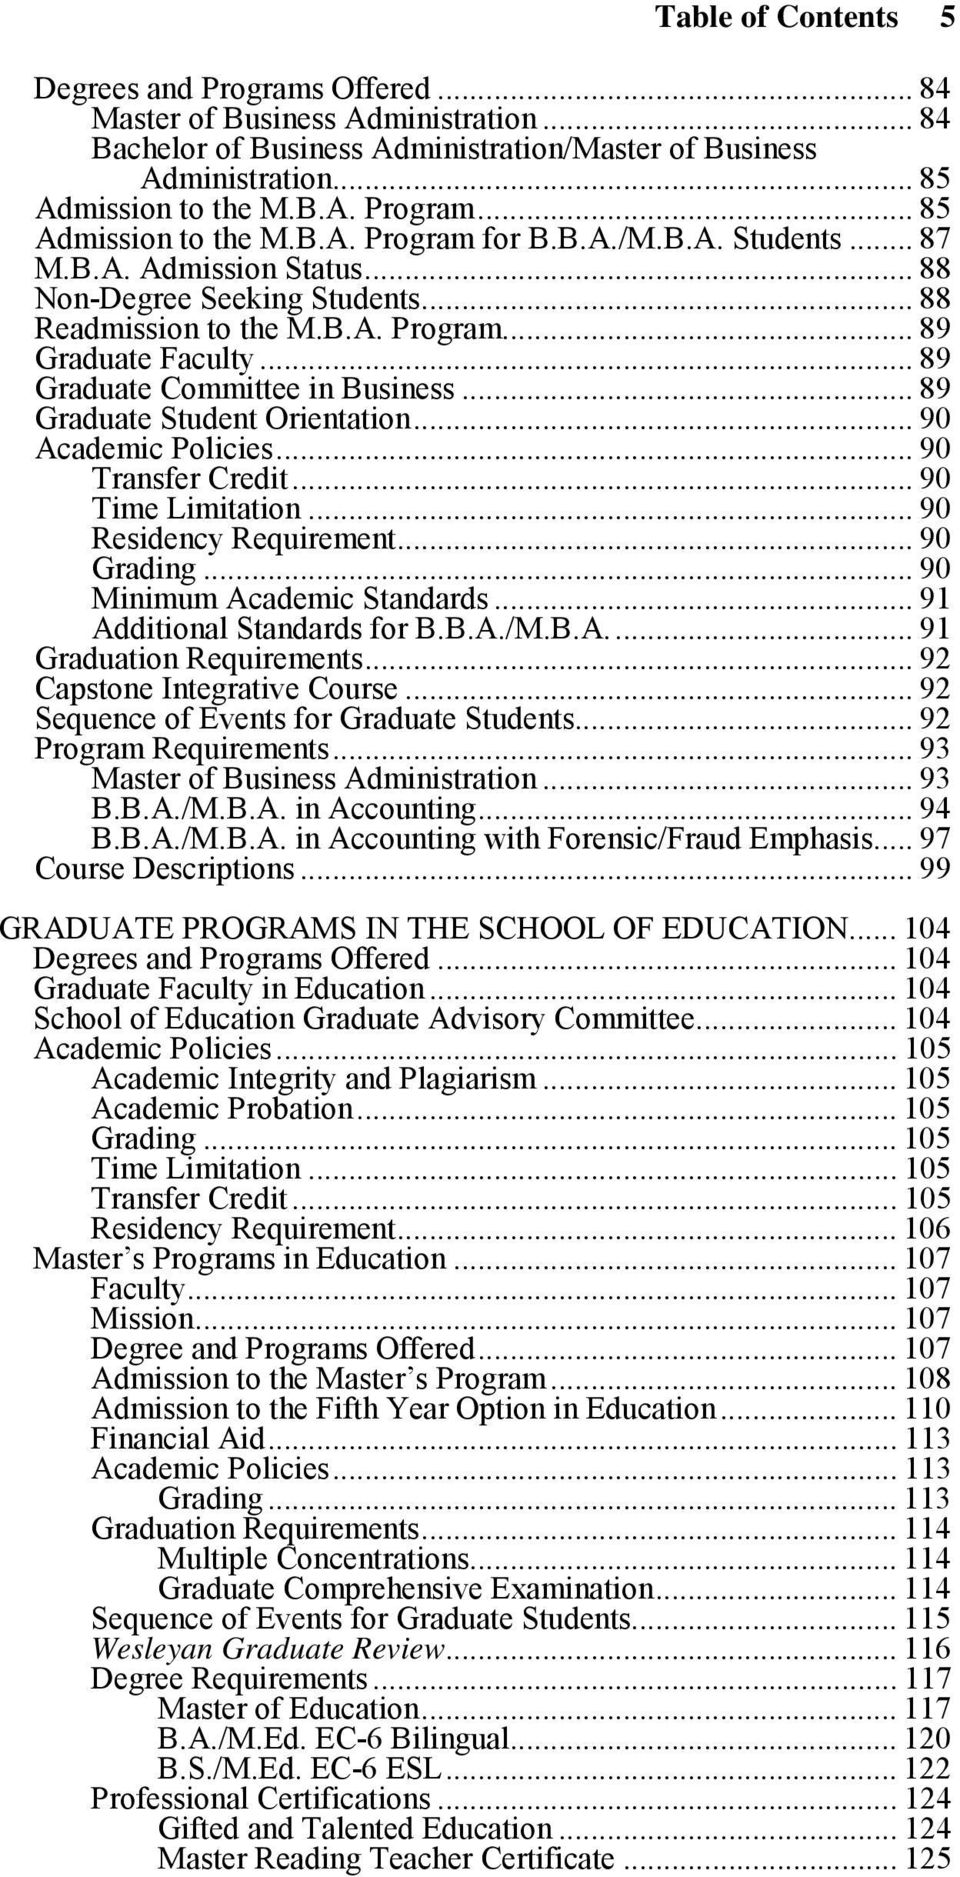 .. 89 Graduate Student Orientation... 90 Academic Policies... 90 Transfer Credit... 90 Time Limitation... 90 Residency Requirement... 90 Grading... 90 Minimum Academic Standards.